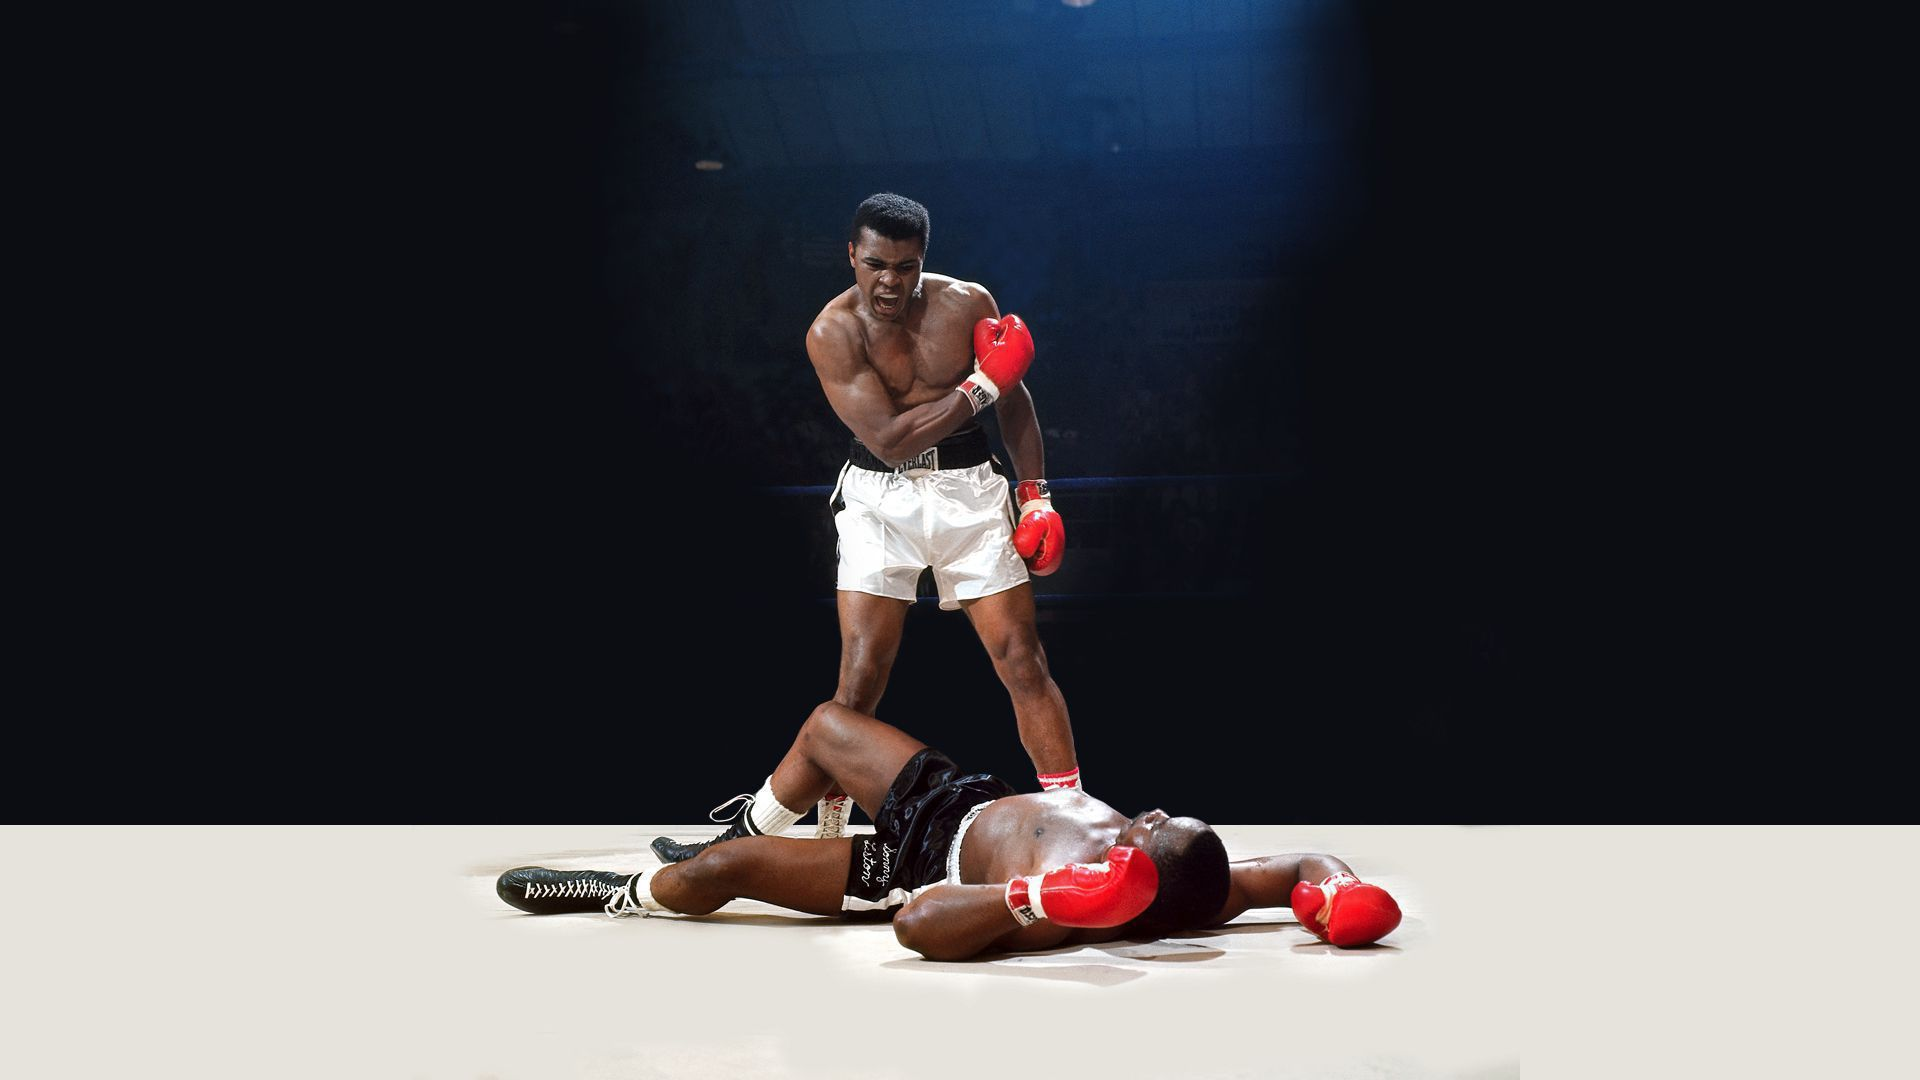 Boxing In High Resolution